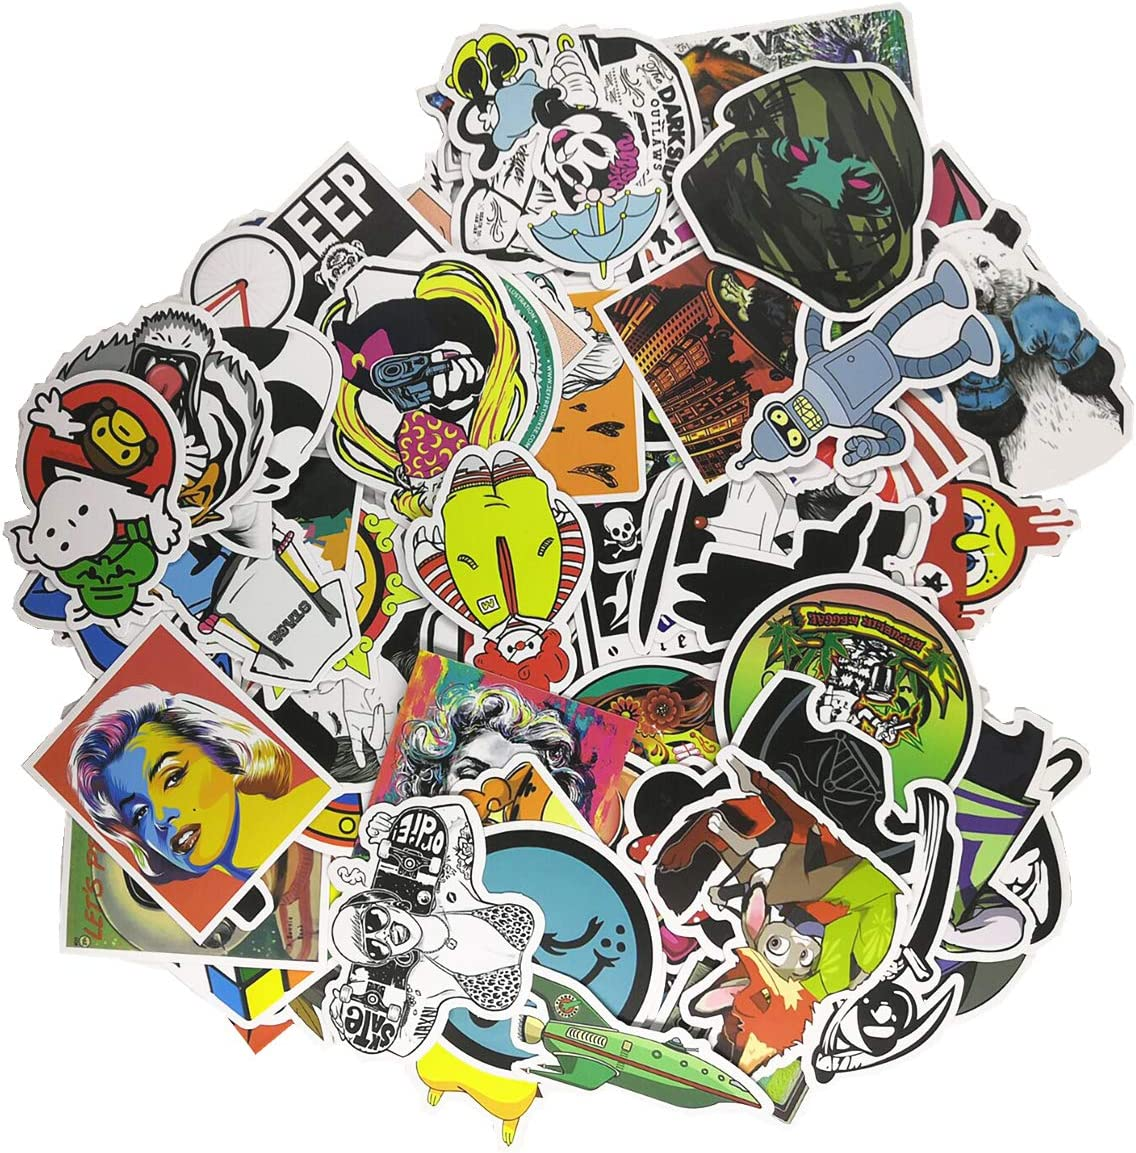 Loveliome 100 Pcs Not Repeat Laptop Stickers,Graffiti Patches Cartoon Hip Hop Logo Sticker Paper for Water Bottles, Waterproof Motorcycle Bicycle Skateboard Luggage Decal, Style 4